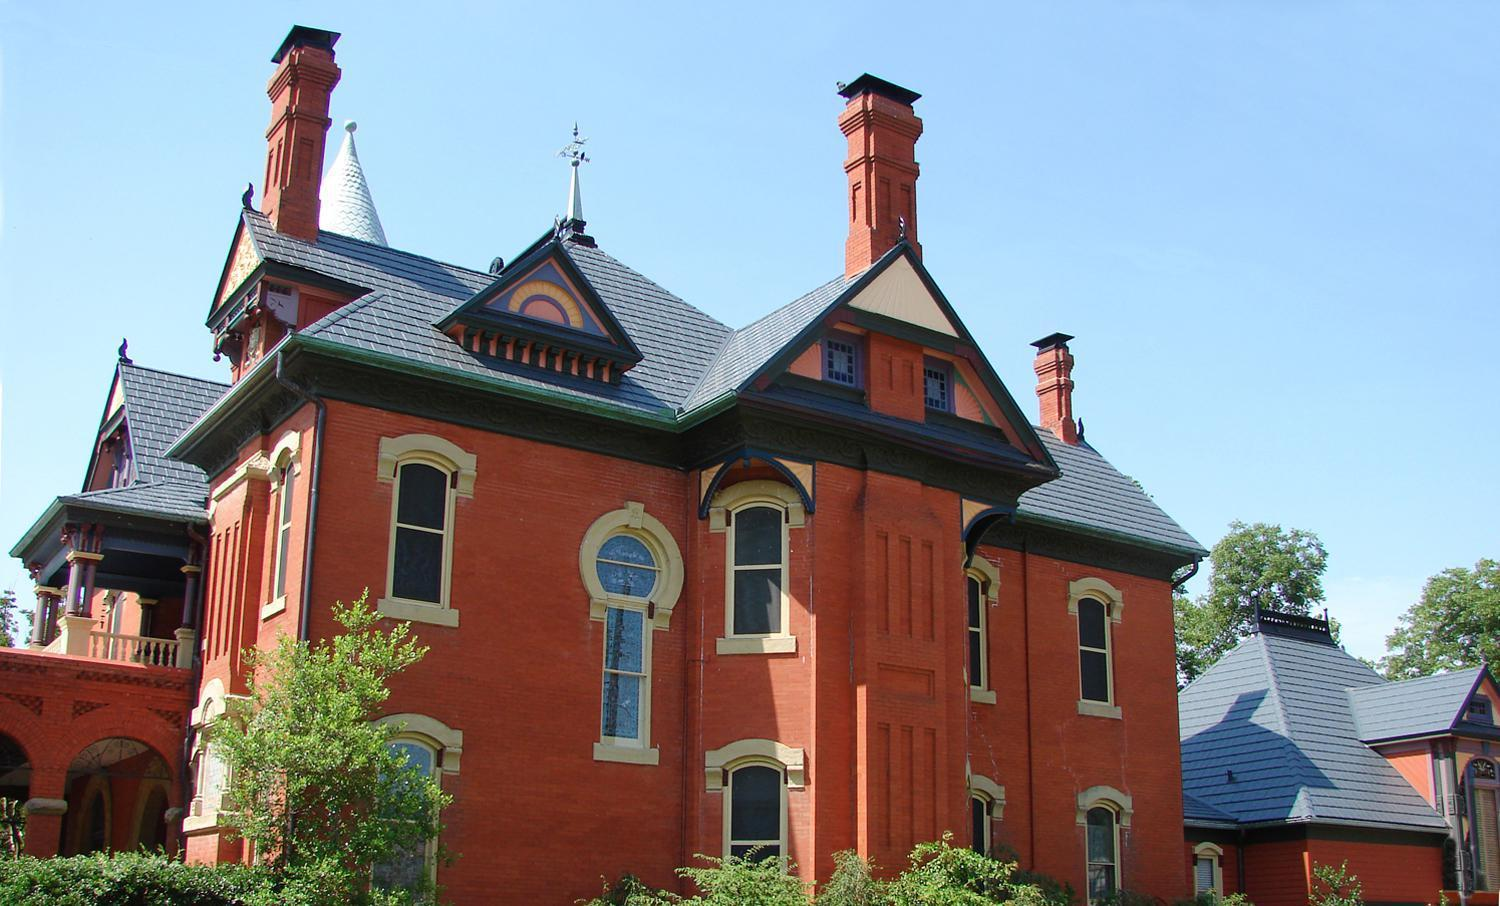 The historical look and charm of these buildings in a small community was preserved with EDCO's steel slate roofing.